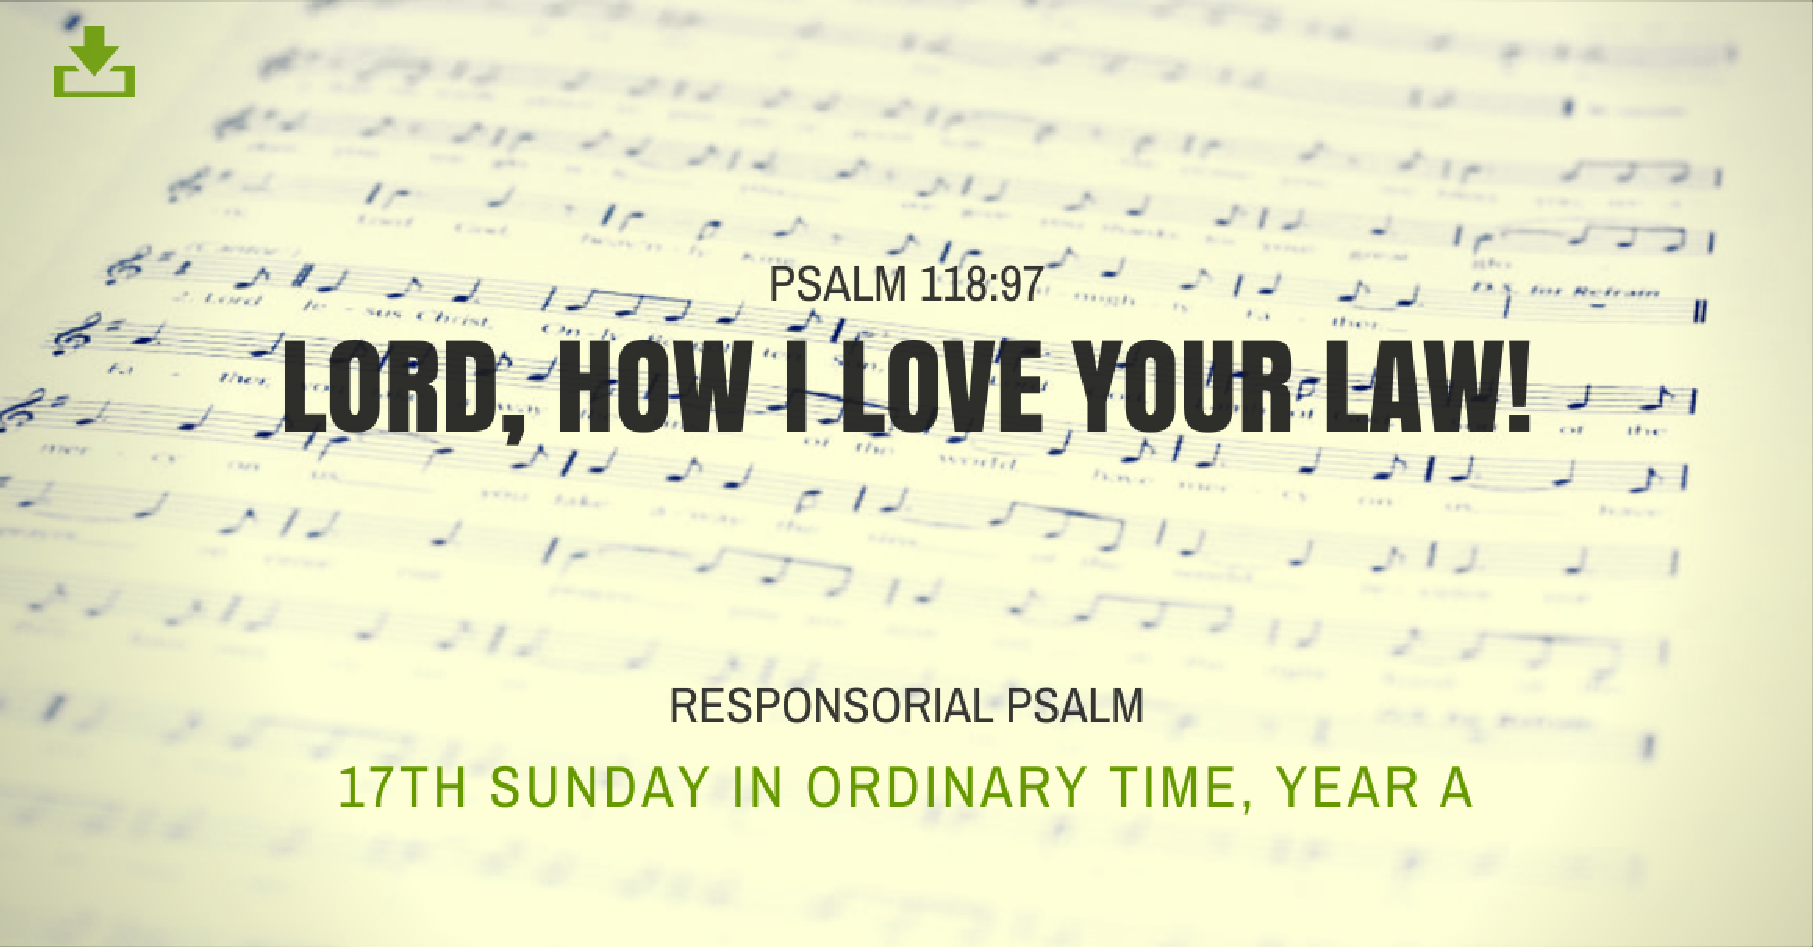 responsorial psalm - cjm music - psalm 118:97 - lord, how i love your law - 17th sunday in ordinary time - year a